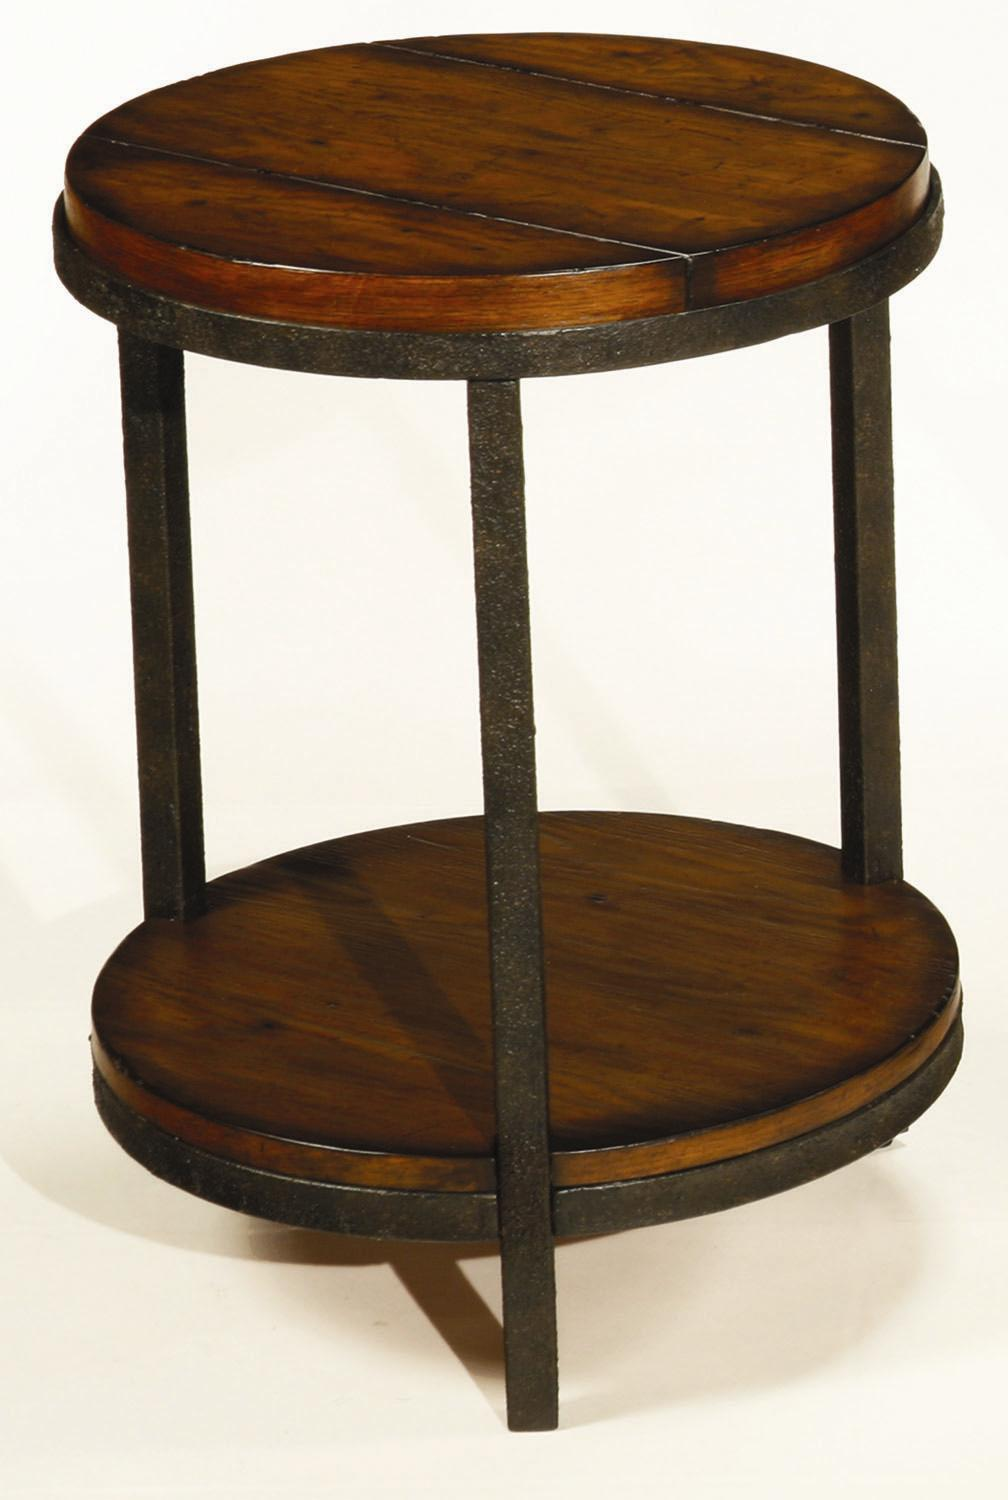 Delicieux Round End Table With Shelf